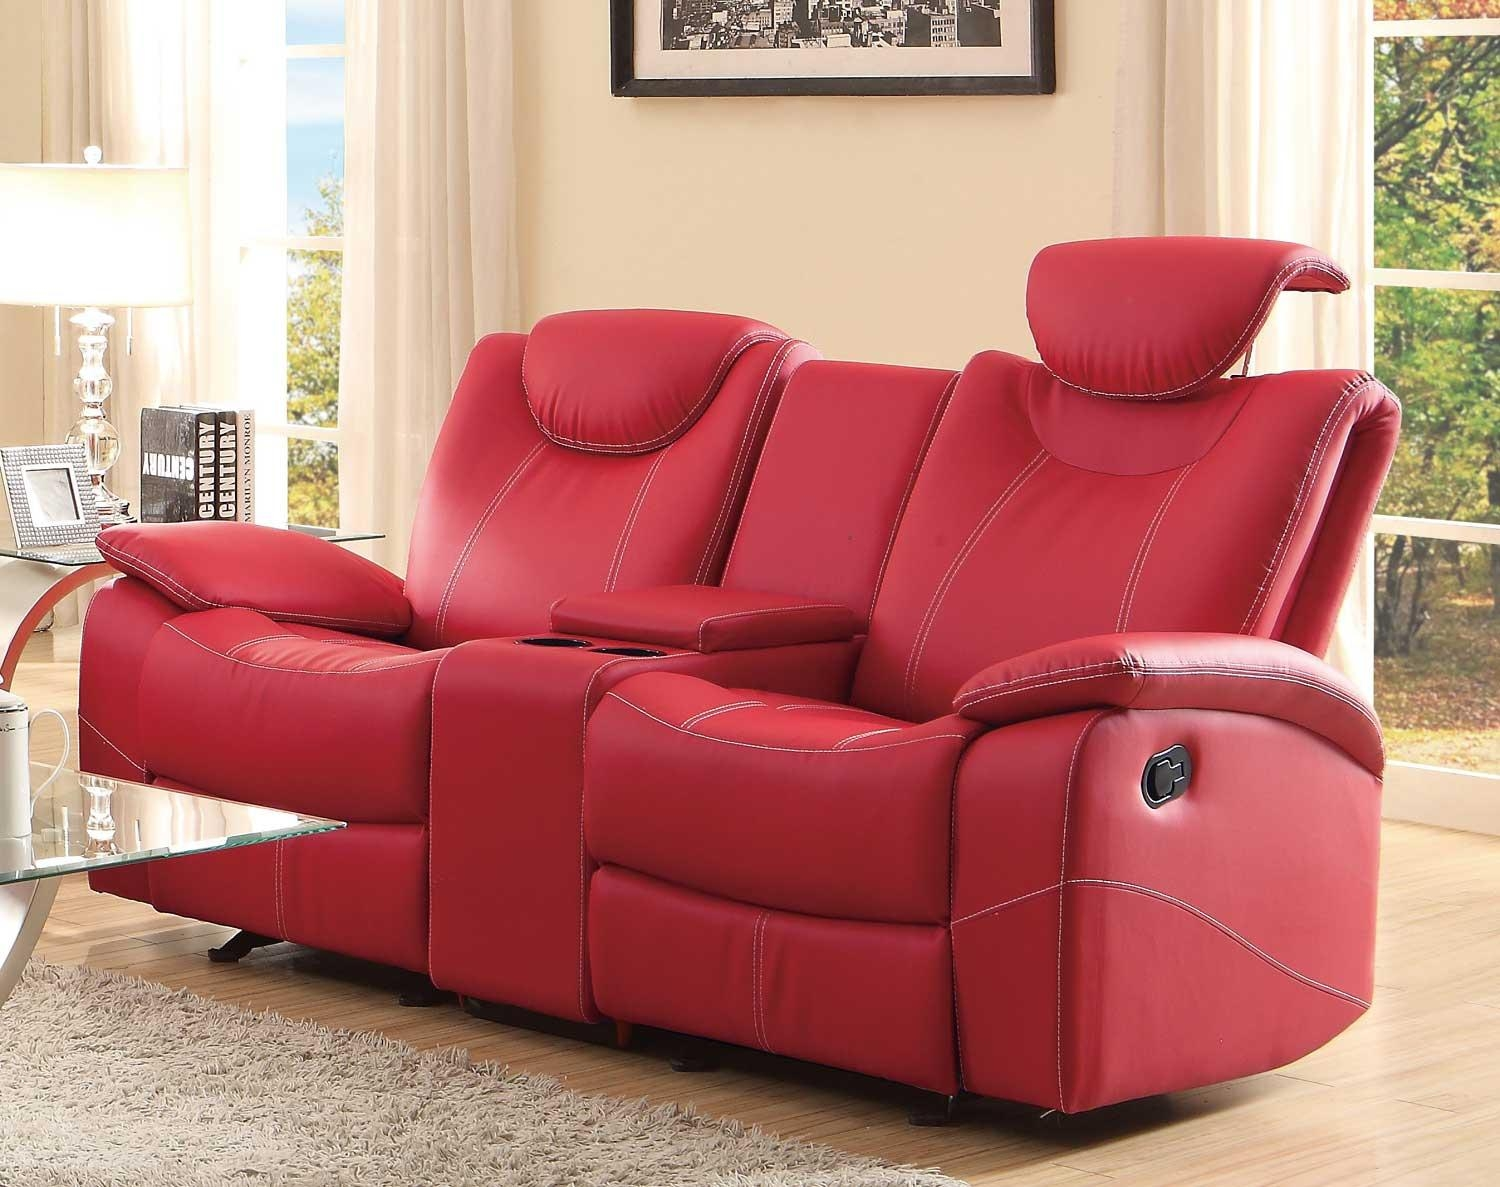 Sofas Center : Magnificent Reclining Sofath Console Images Concept Throughout Sofas With Consoles (Image 8 of 20)